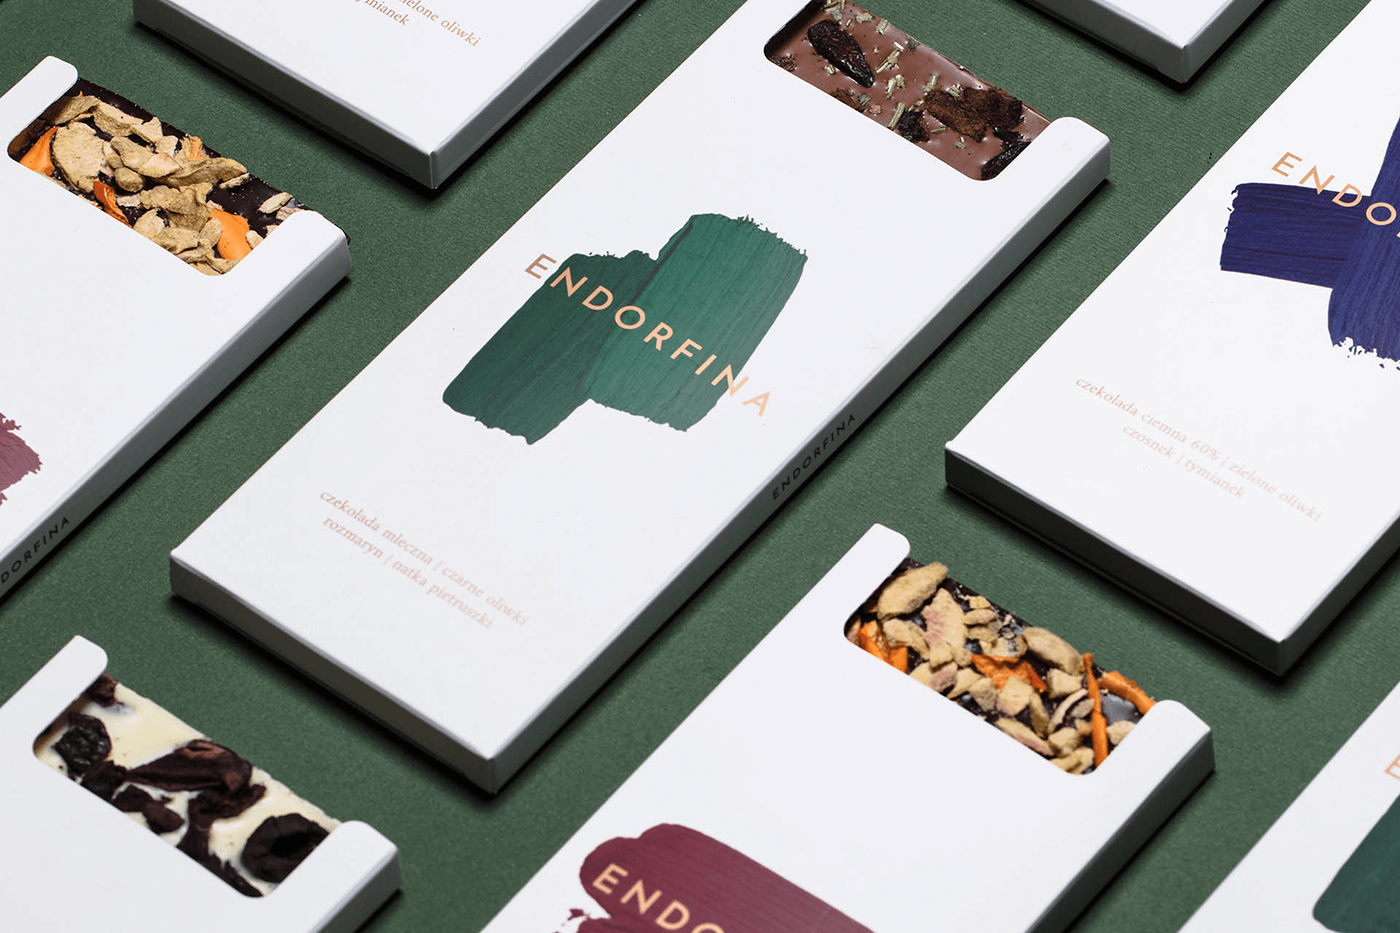 Packaging design and branding: Endorfina